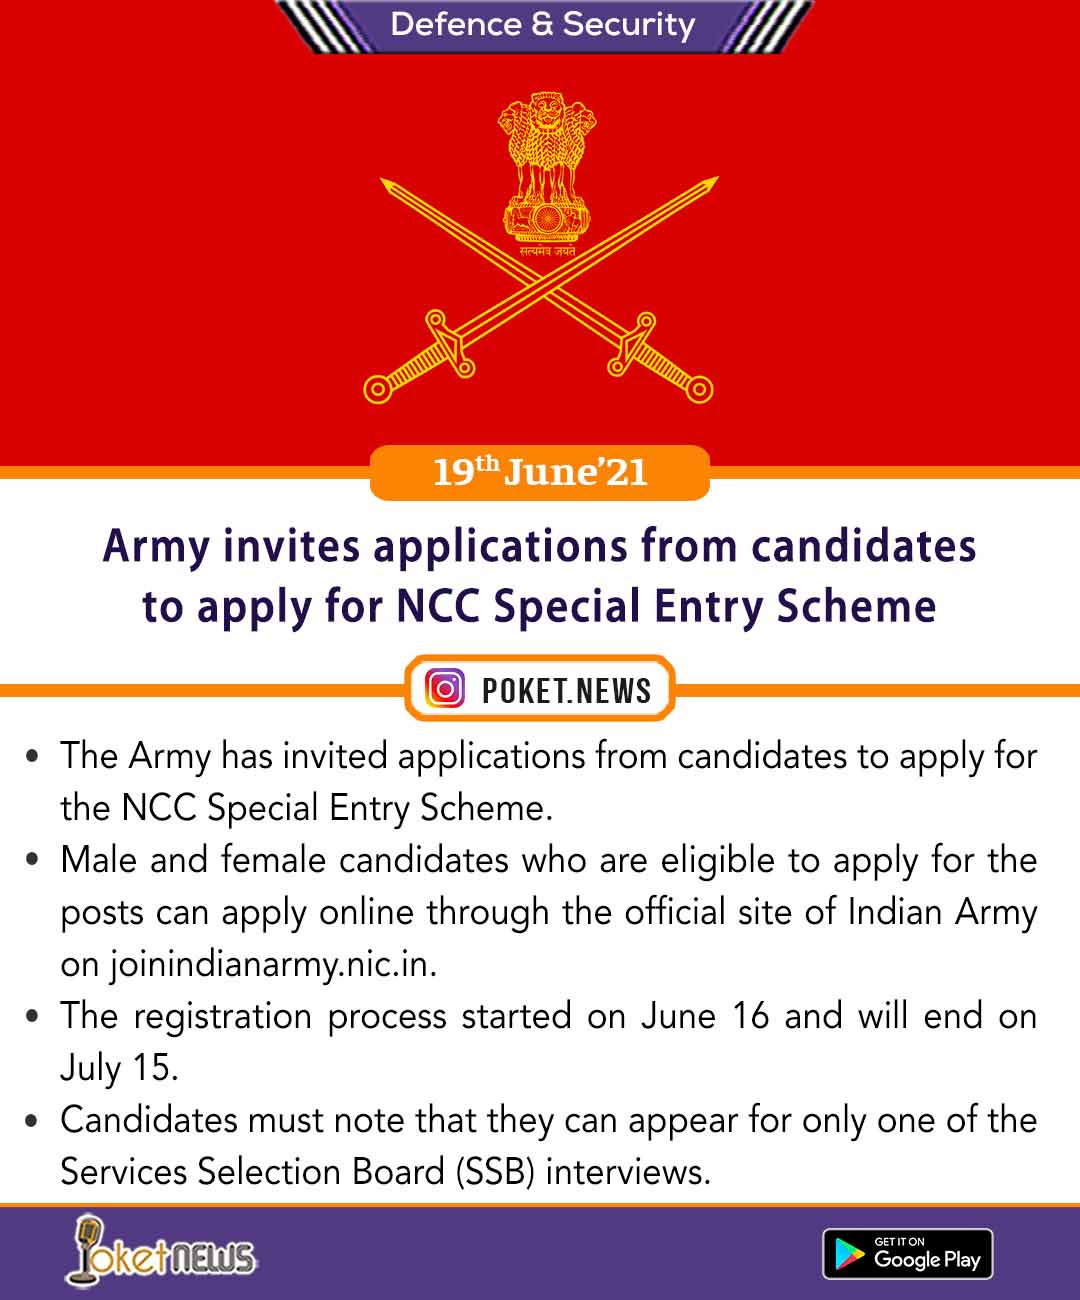 Army invites applications from candidates to apply for NCC Special Entry Scheme